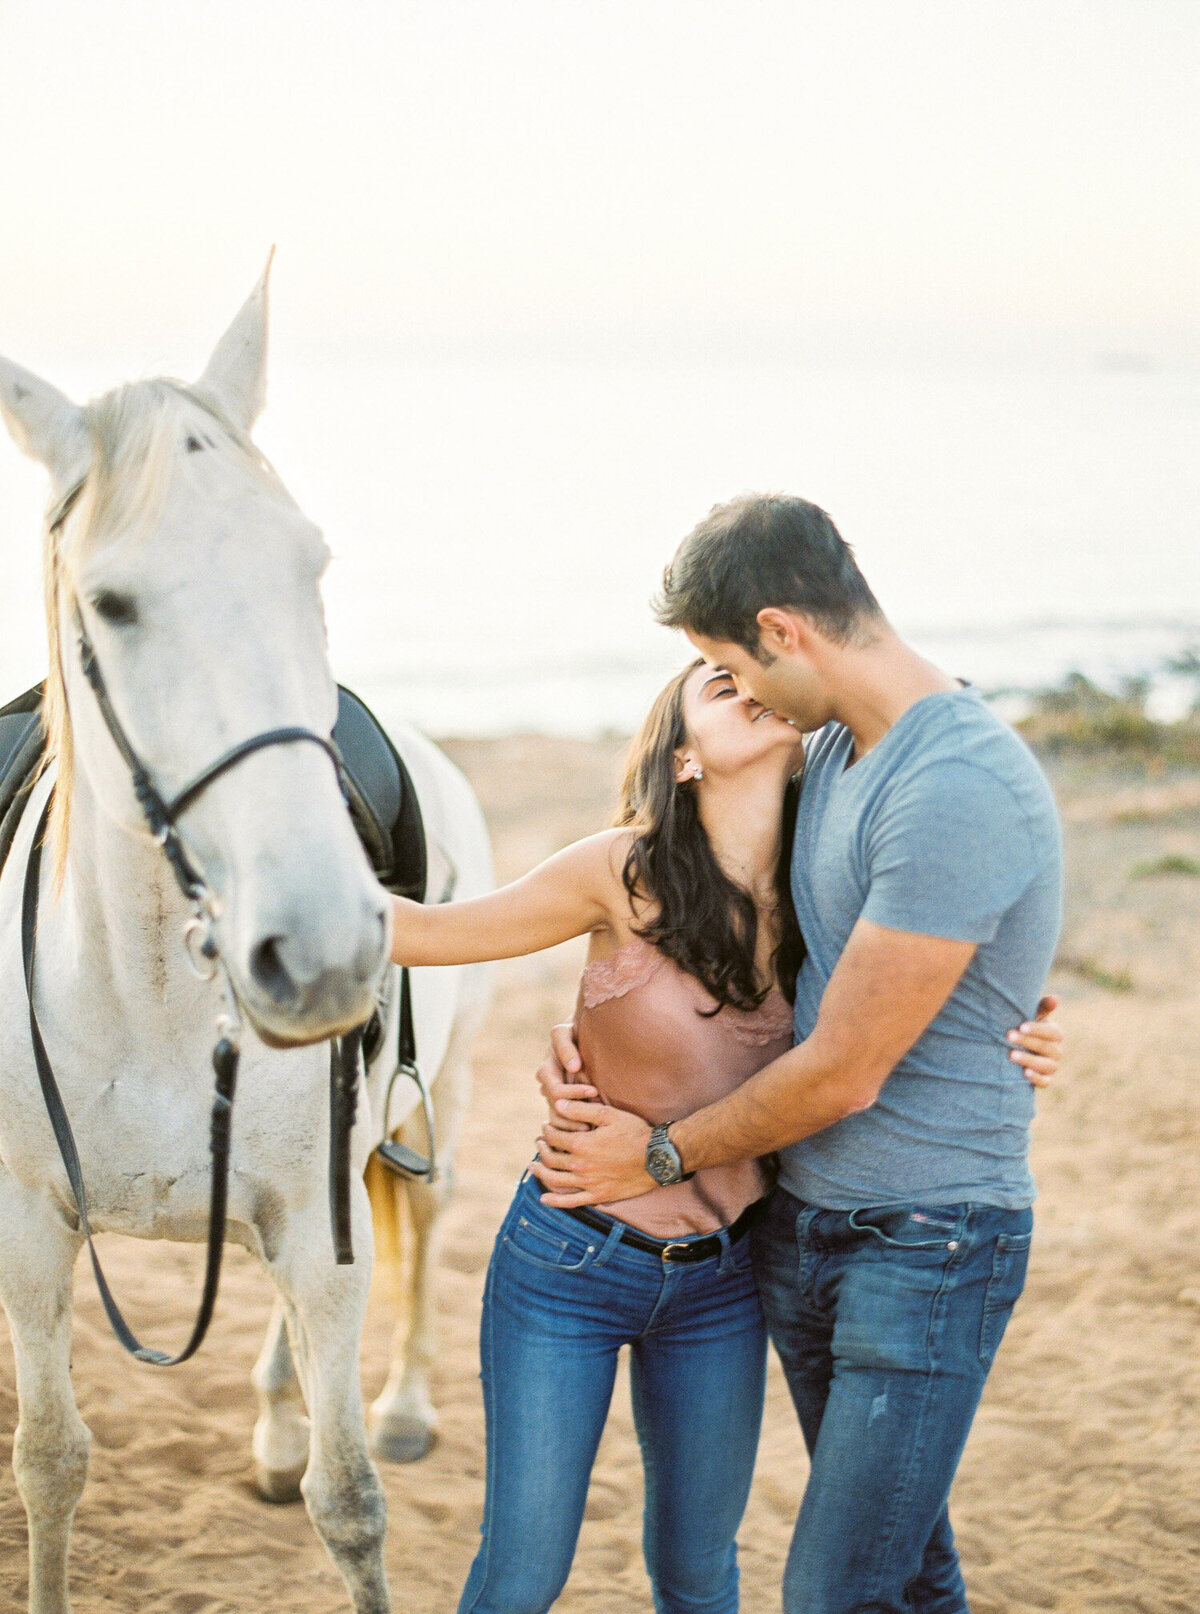 beach_horseback_riding_wedding_proposal-16